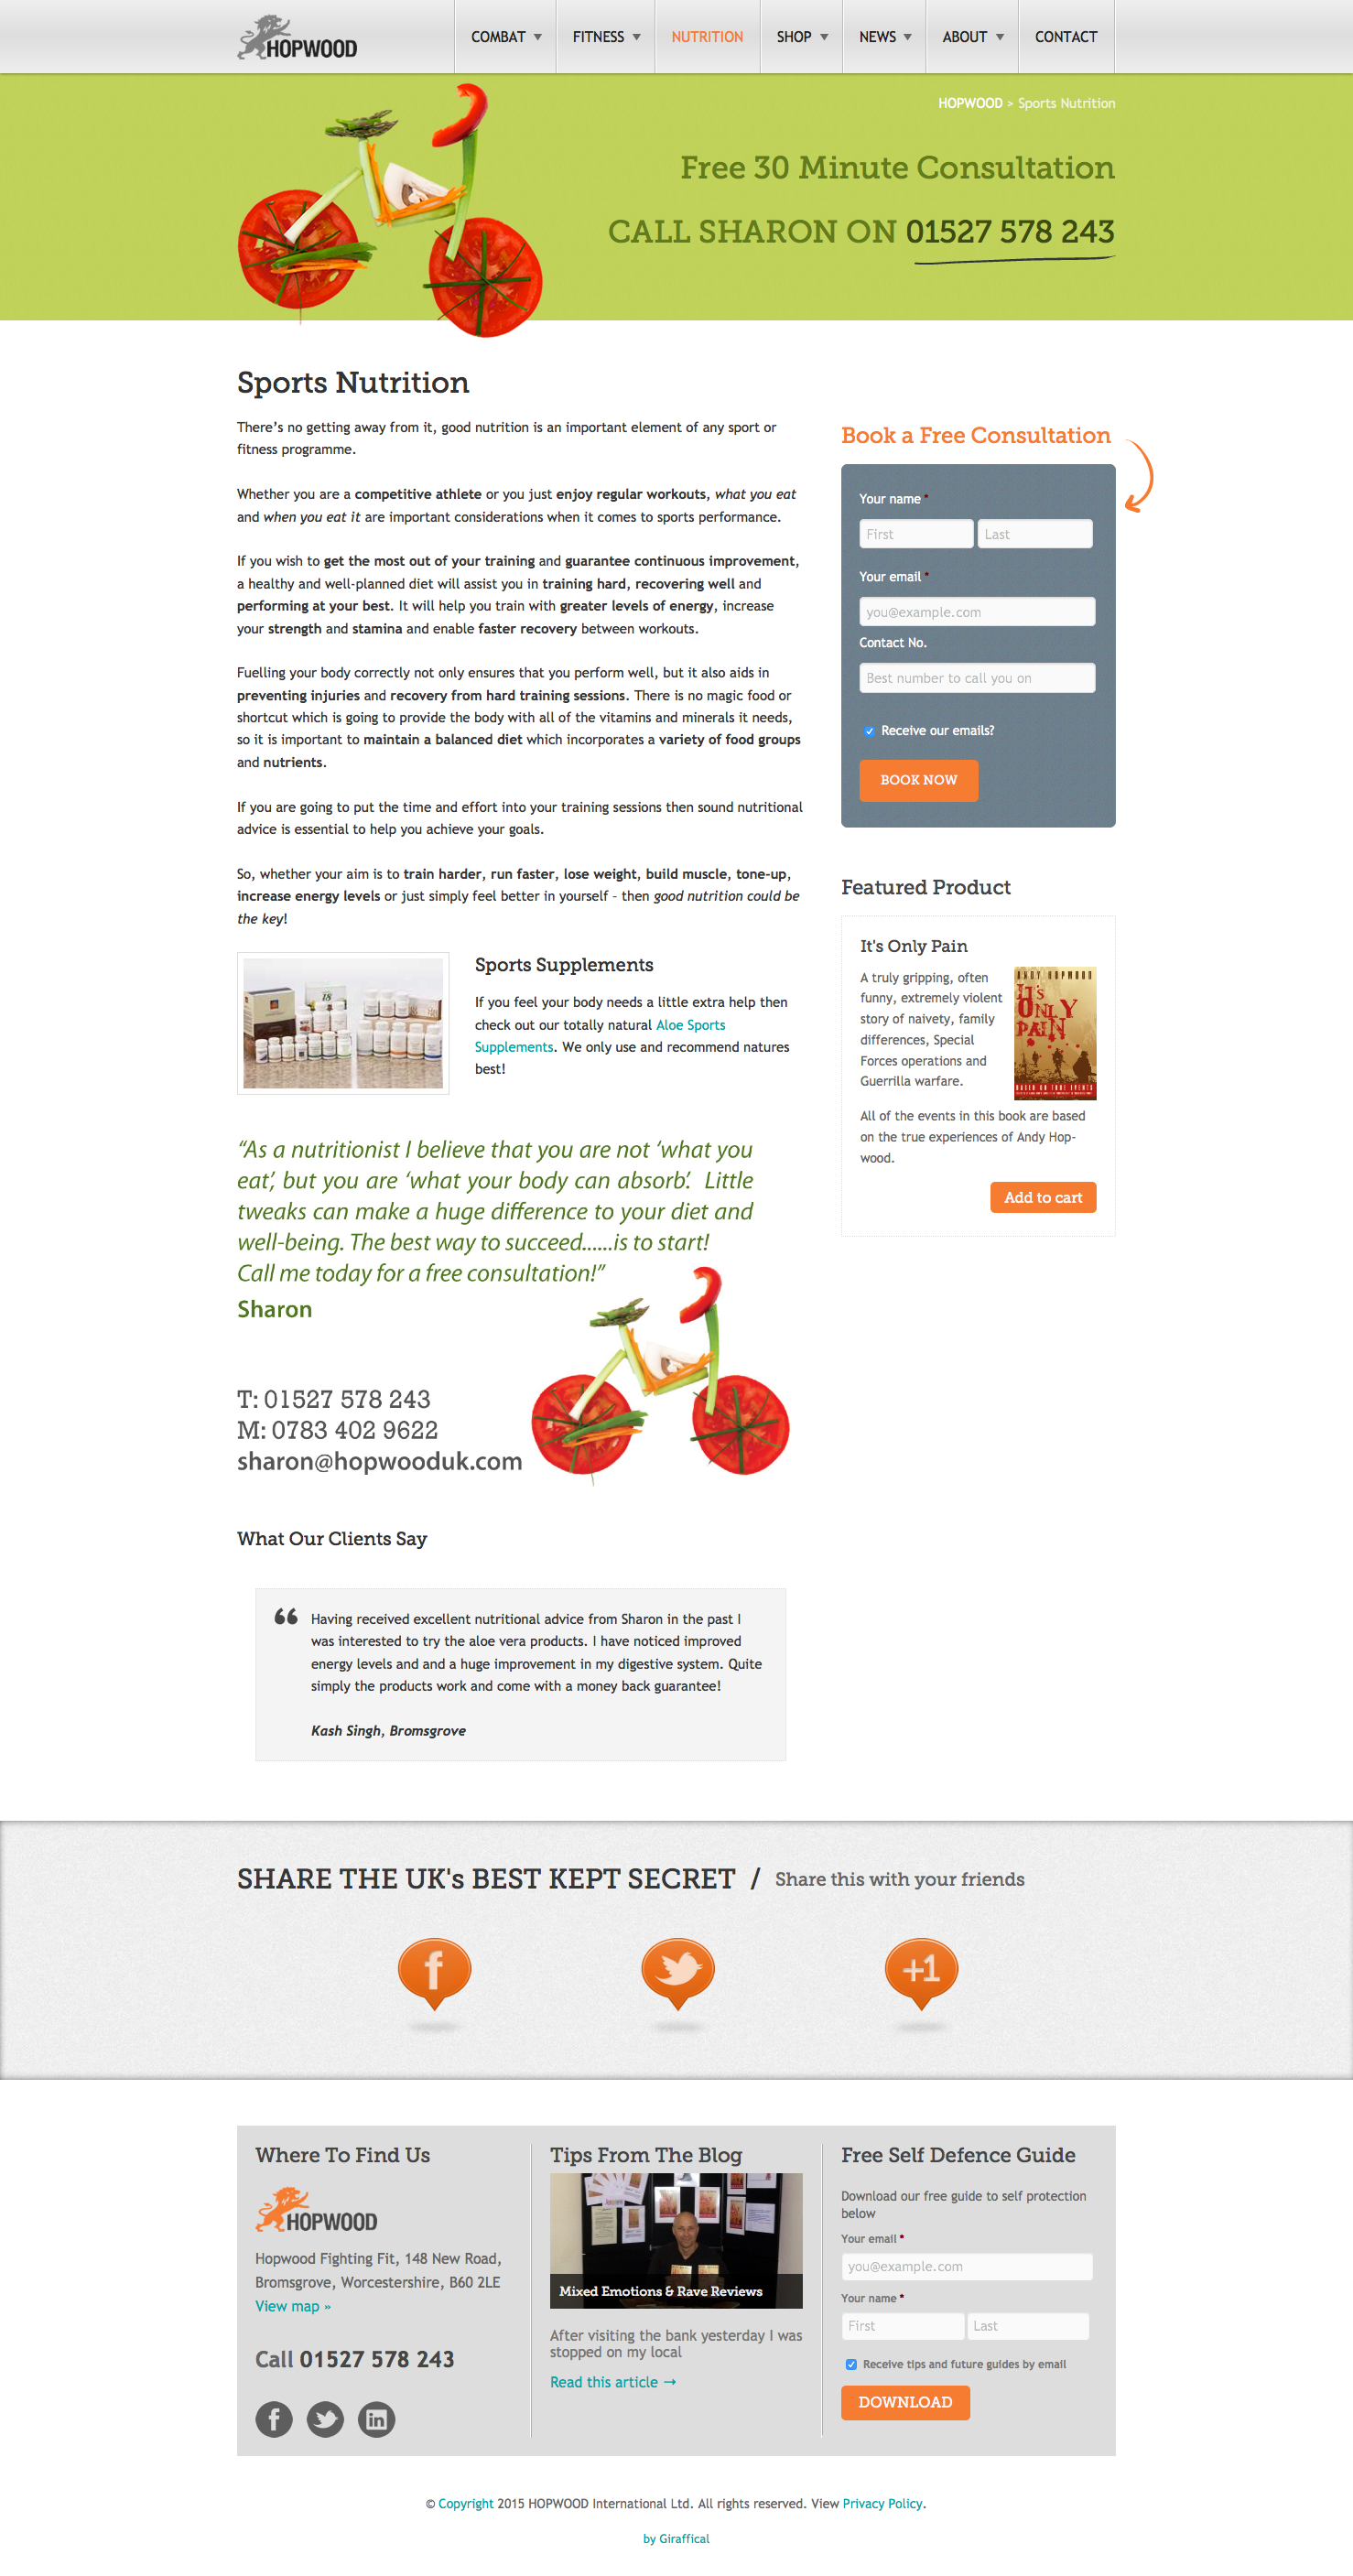 Hopwood UK Website Redesign - Nutrition Page